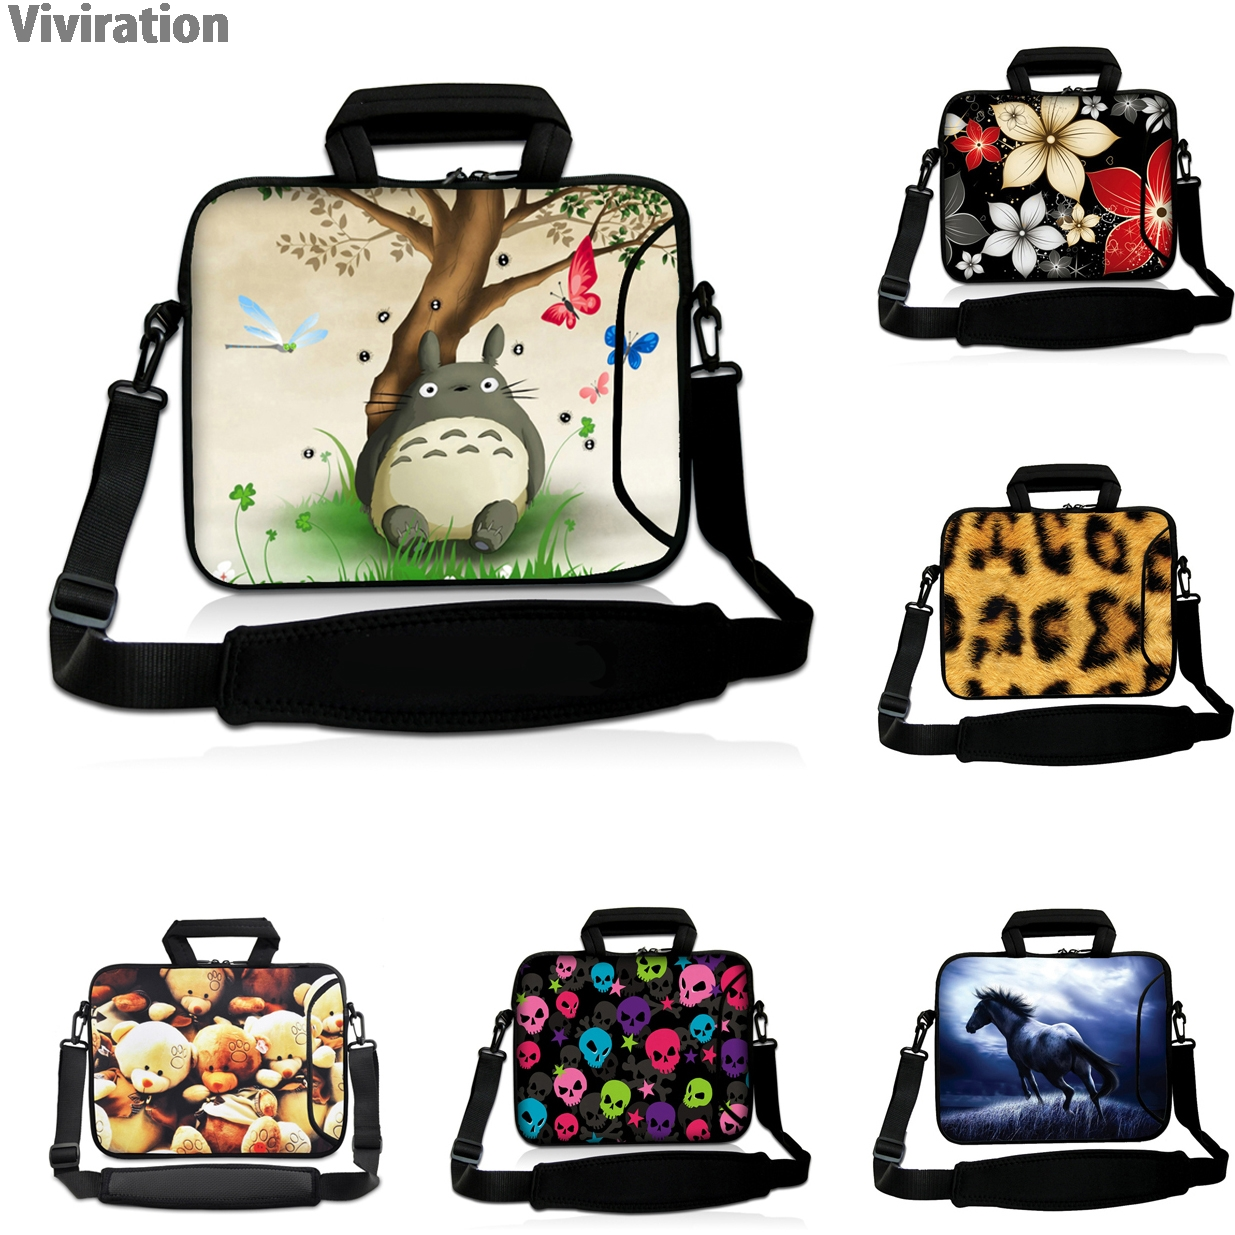 Viviration Shockproof Messenger Carry Bag Handle Case Womens Briefcase For 10 12 13 14 15 17 Inch Acer Sony Toshiba Macbook Asus